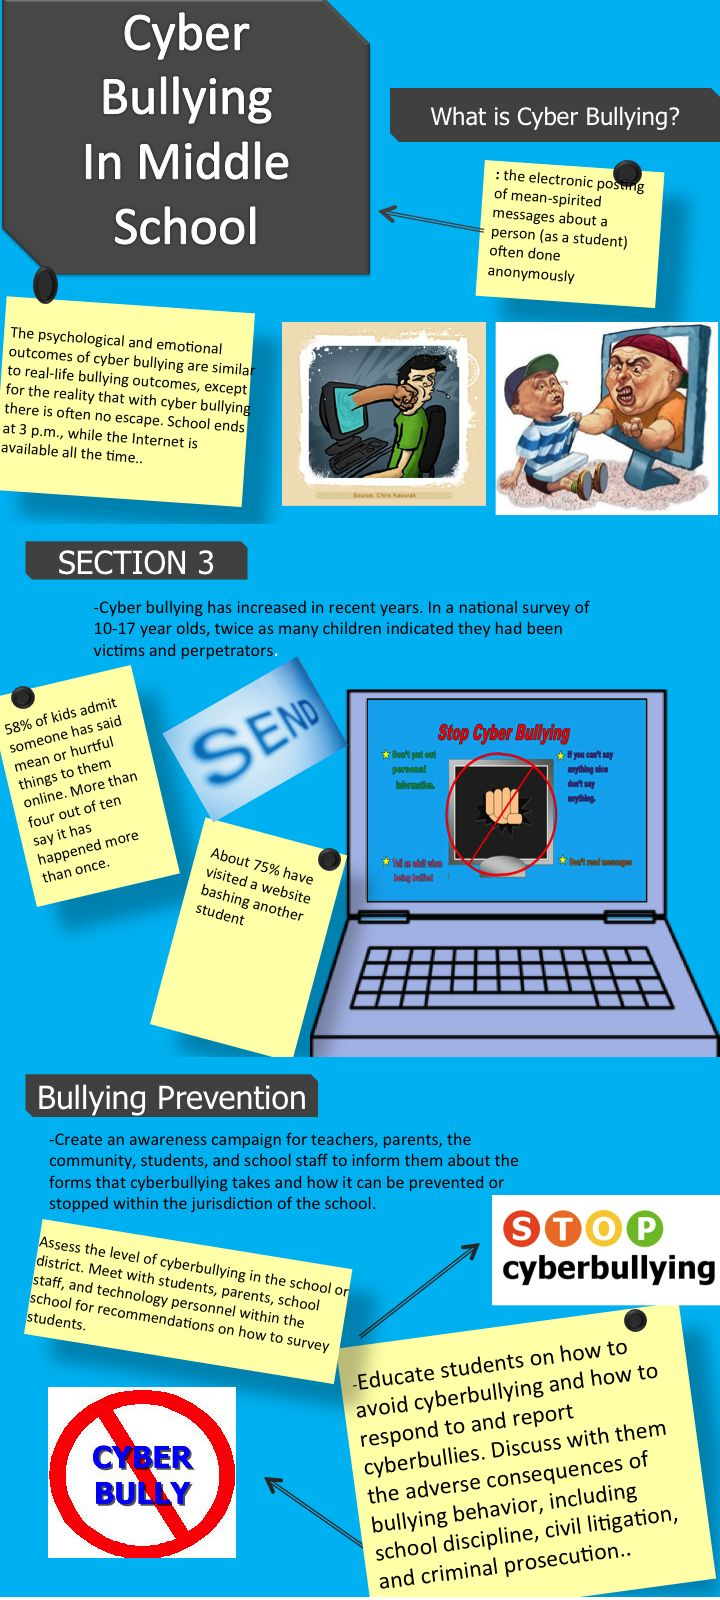 Let's work together to stop cyber bullying!